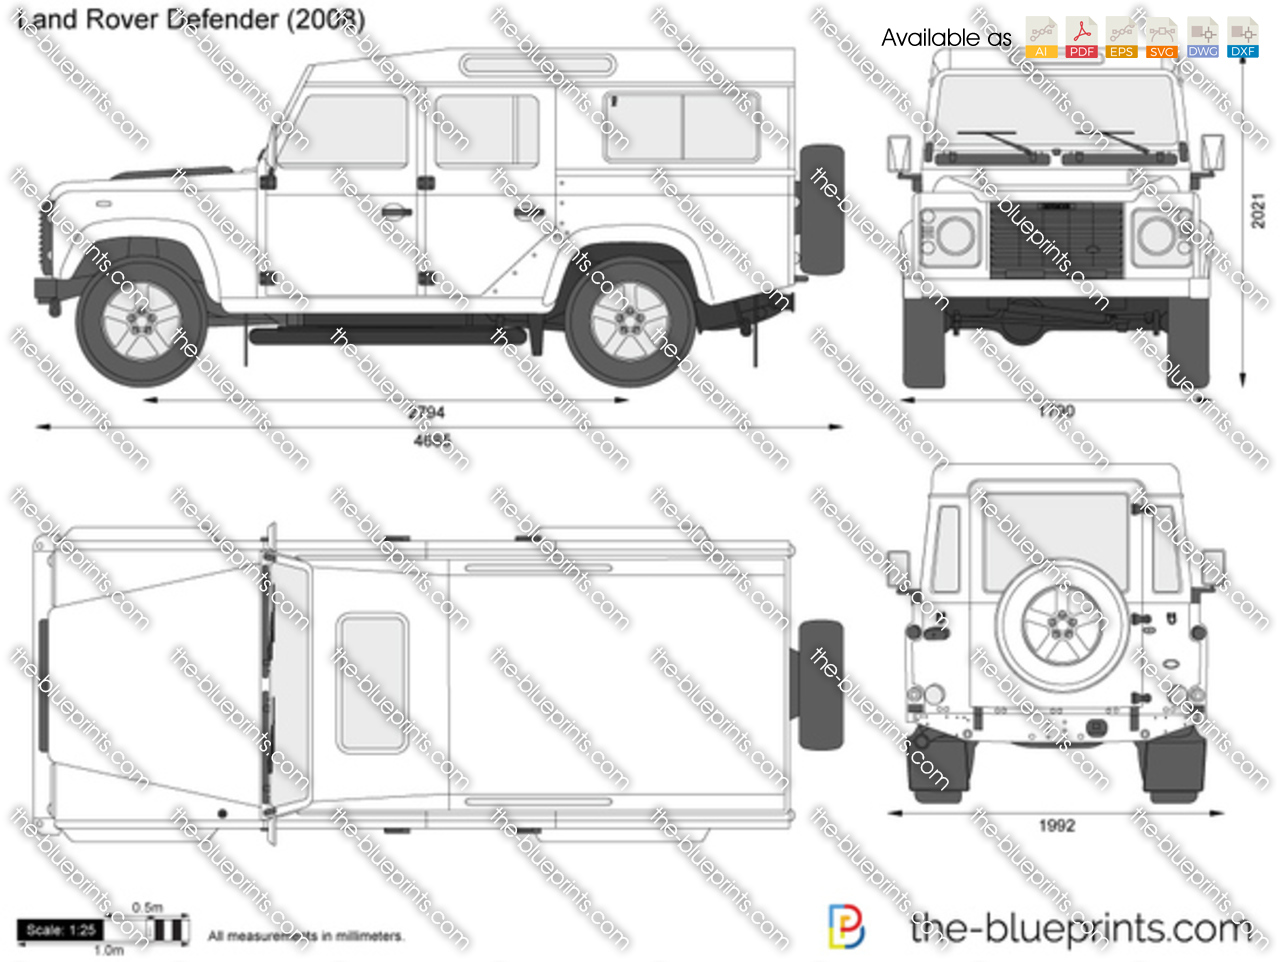 land rover defender jersey with Proper Height For 110 A 52498 on Autosuperbikes blogspot also 3 People Survive Severe Rollover together with Panasonic 20logo in addition Irina Shayk Upskirt also Car Leasing Without Credit Check.